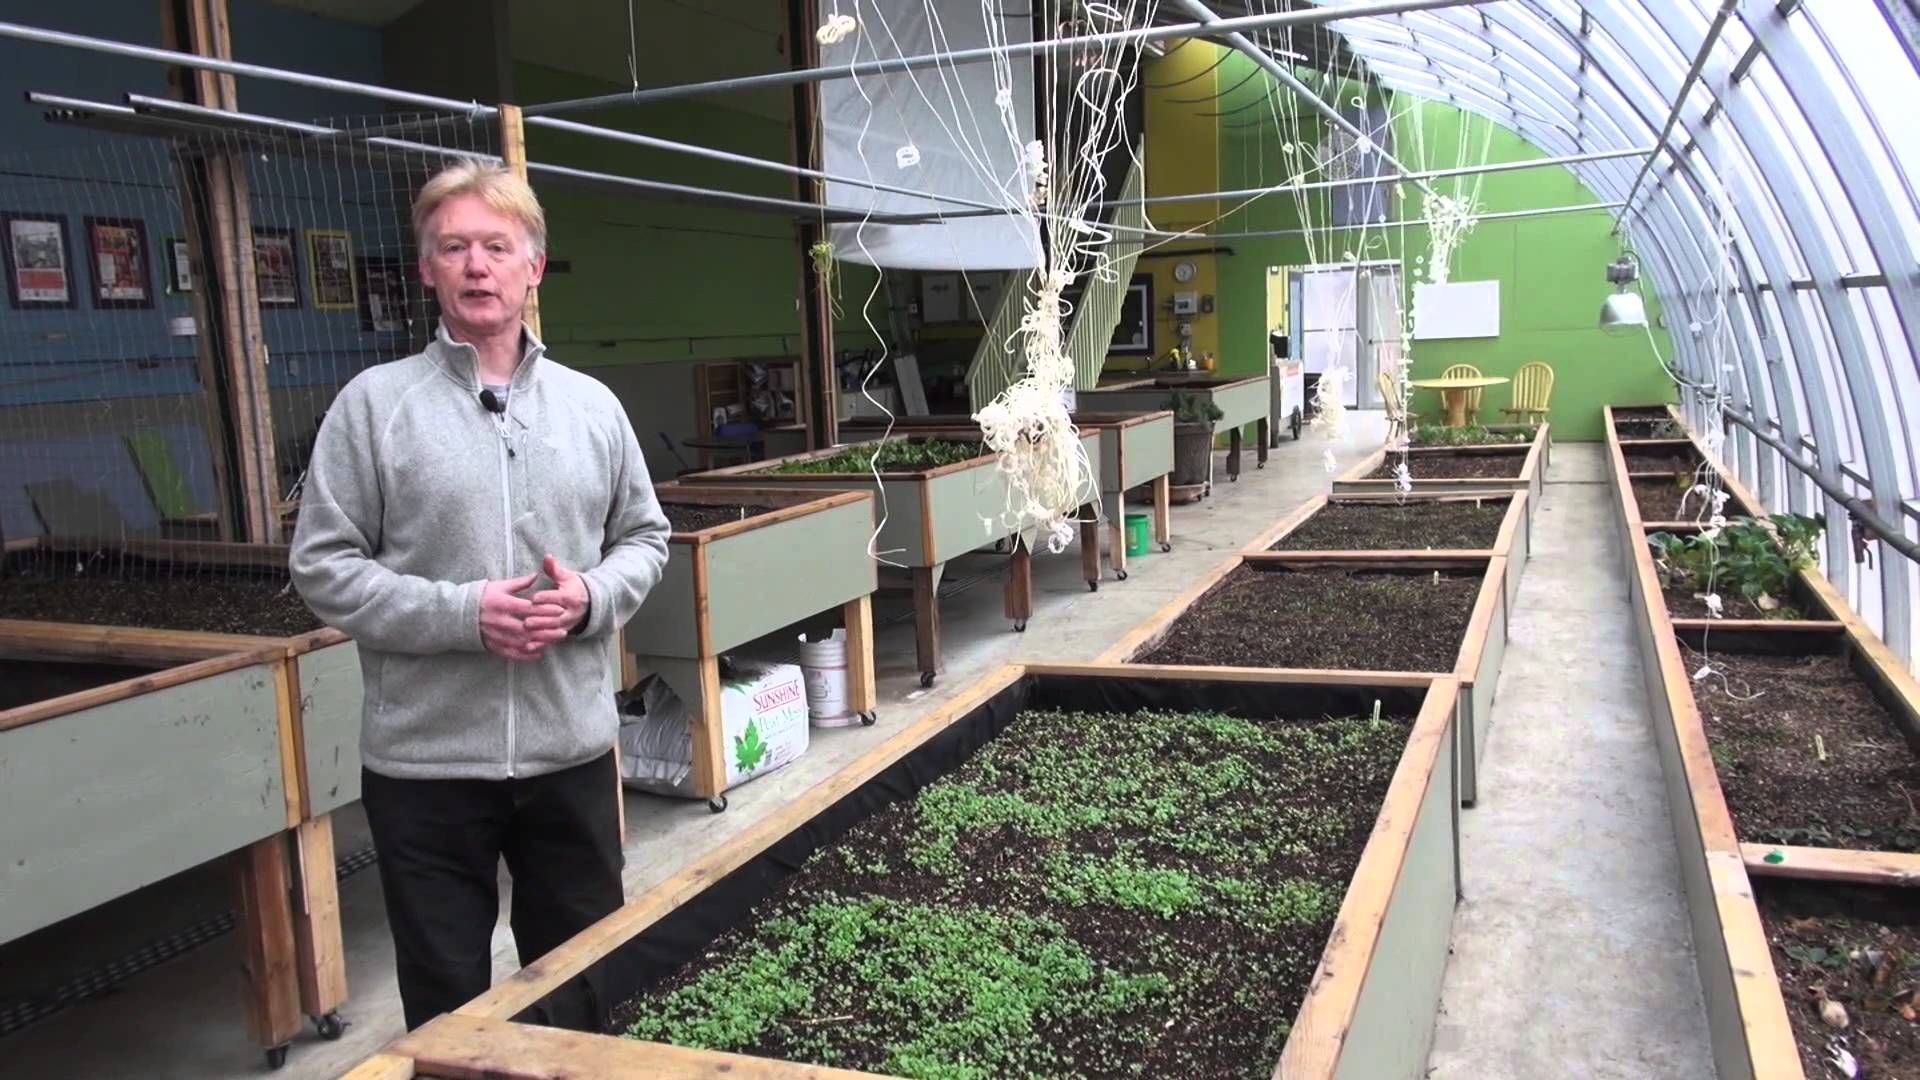 73 passive solar greenhouse a way to produce more local food and